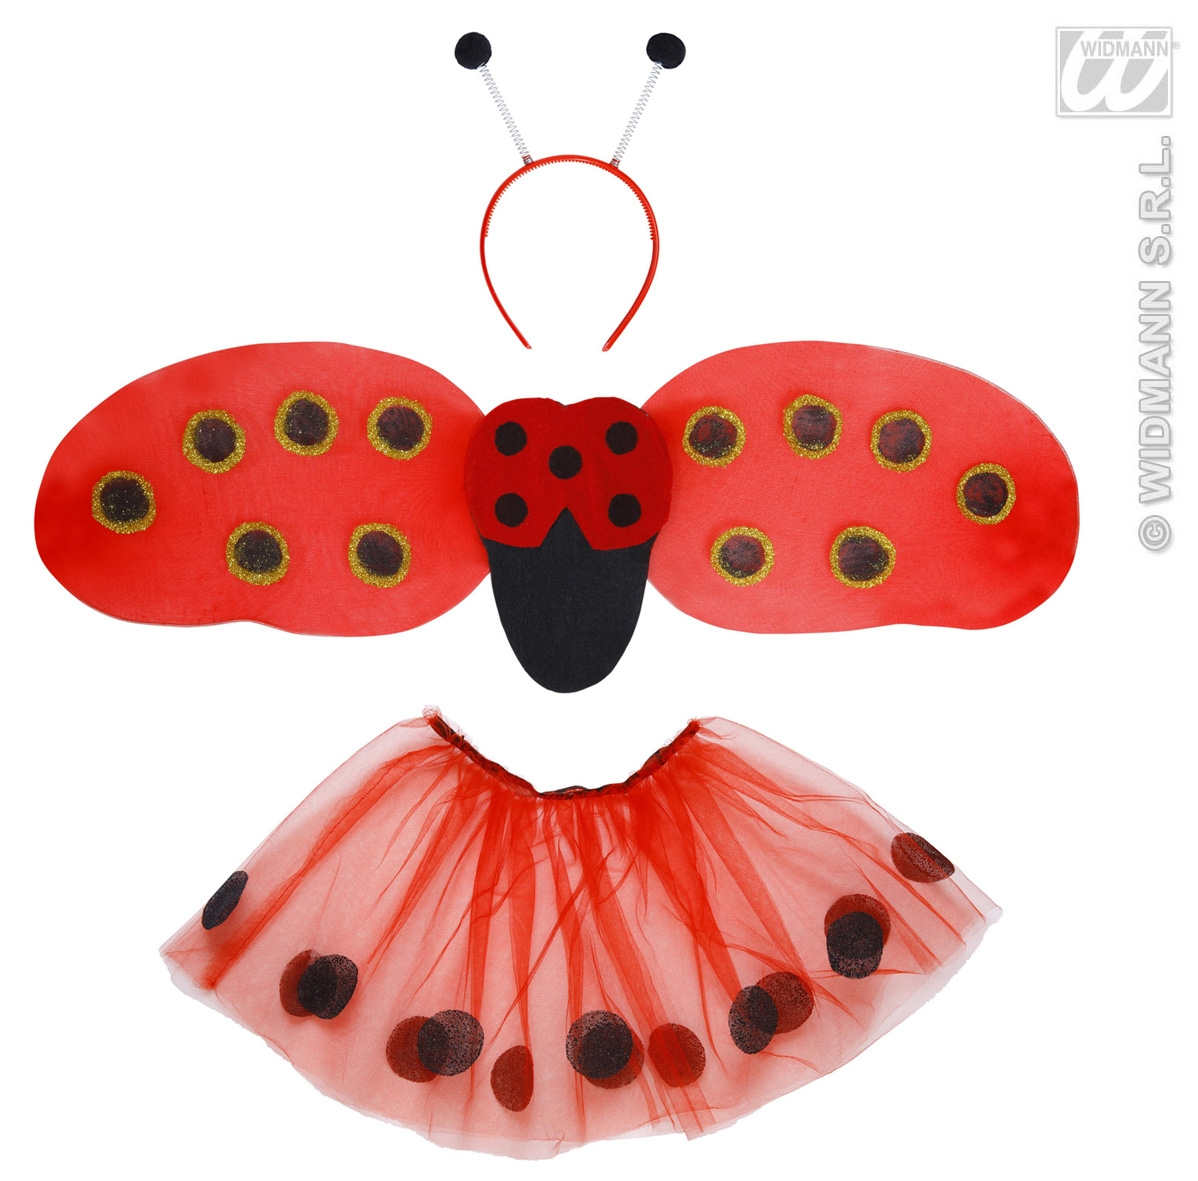 8222L Ladybird Dress Up Set